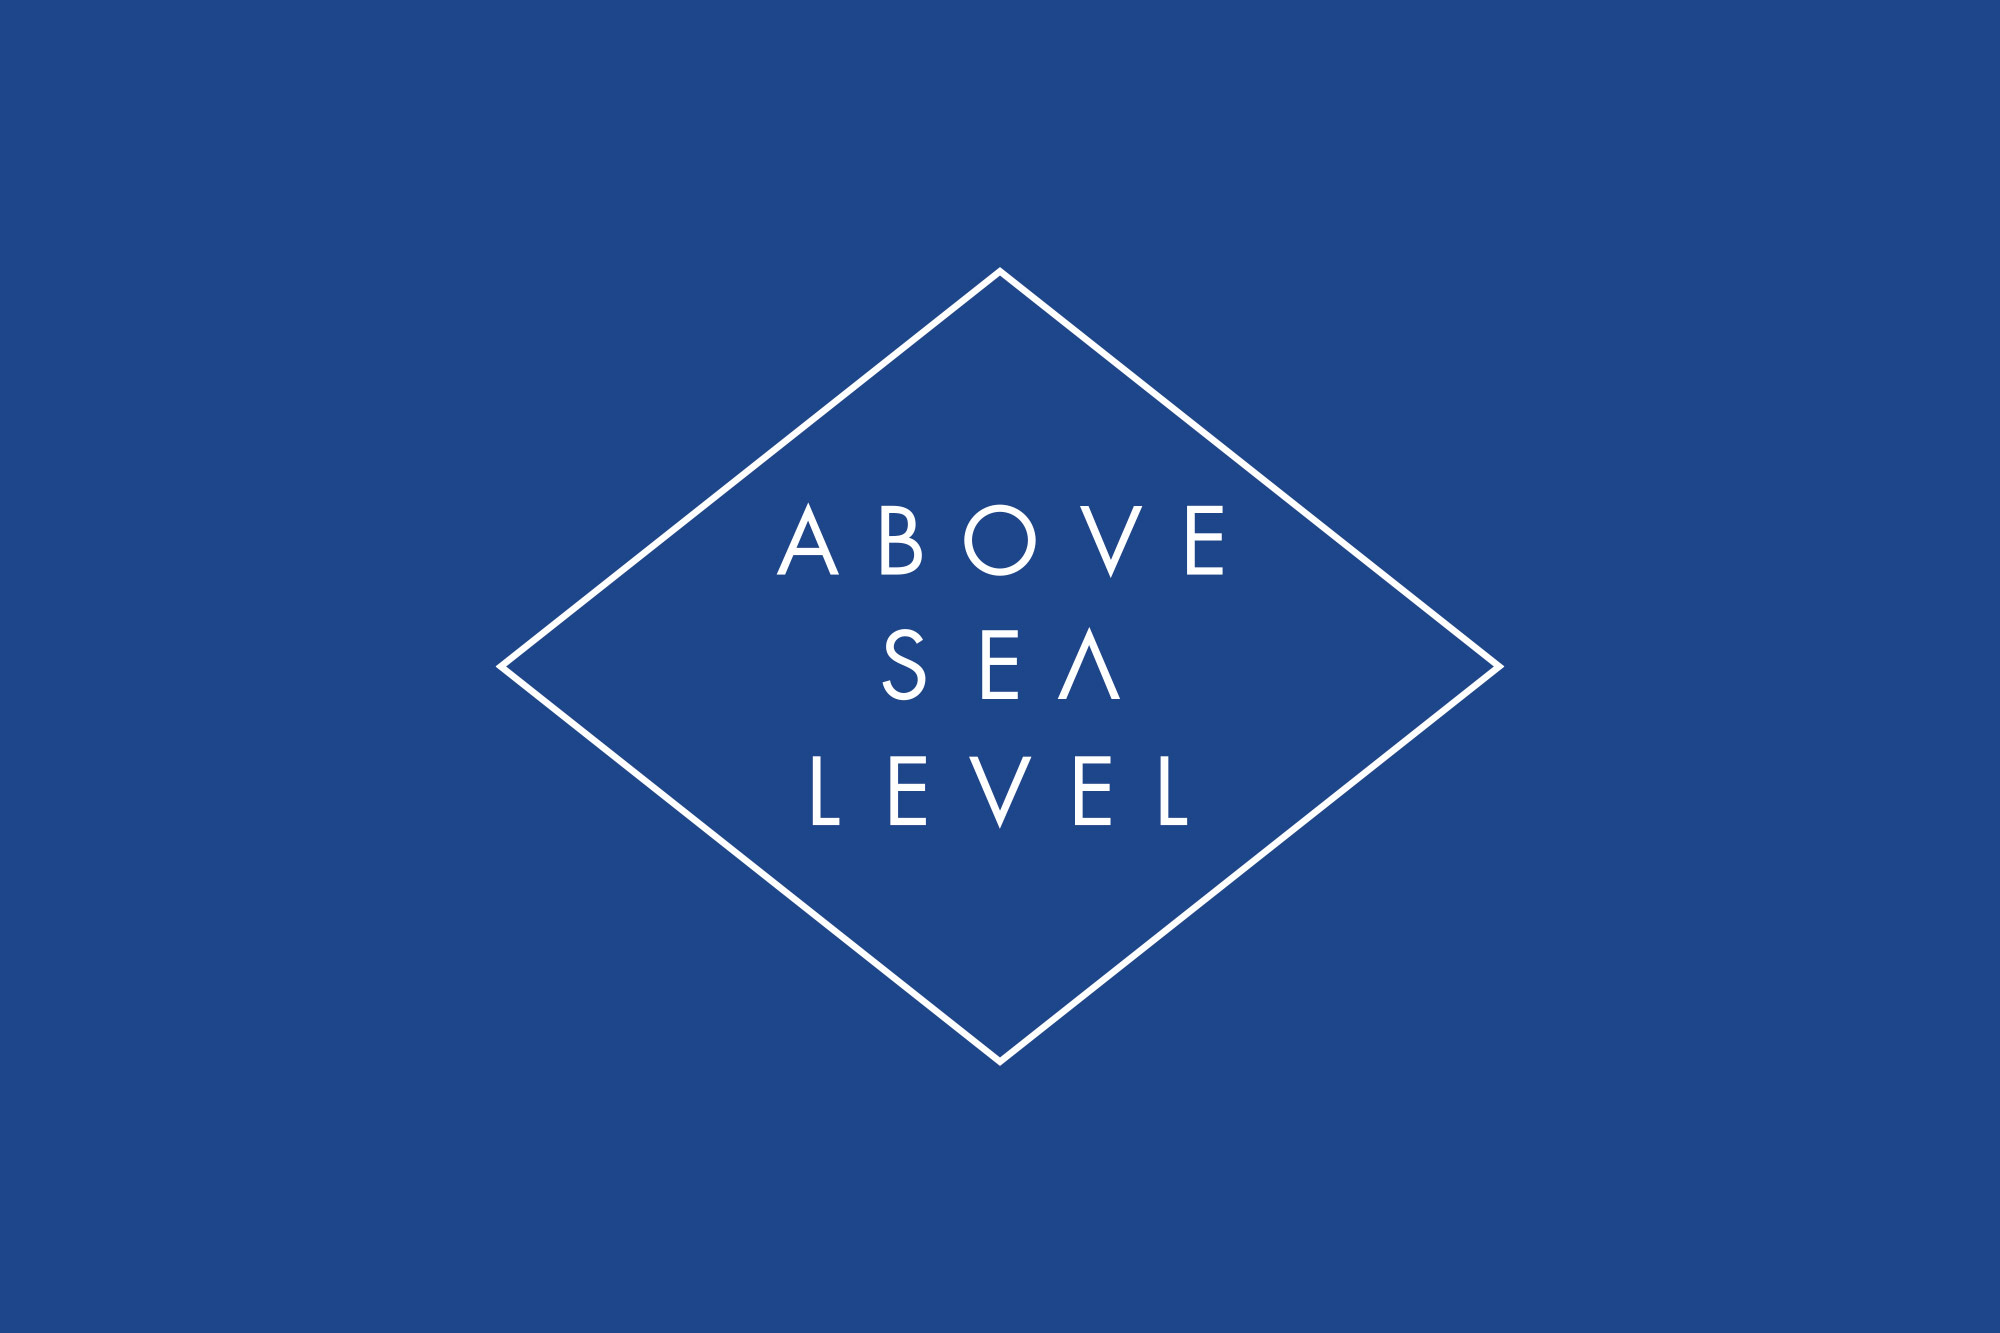 gareth-paul-jones-studio-design-case-study-above-sea-level-01